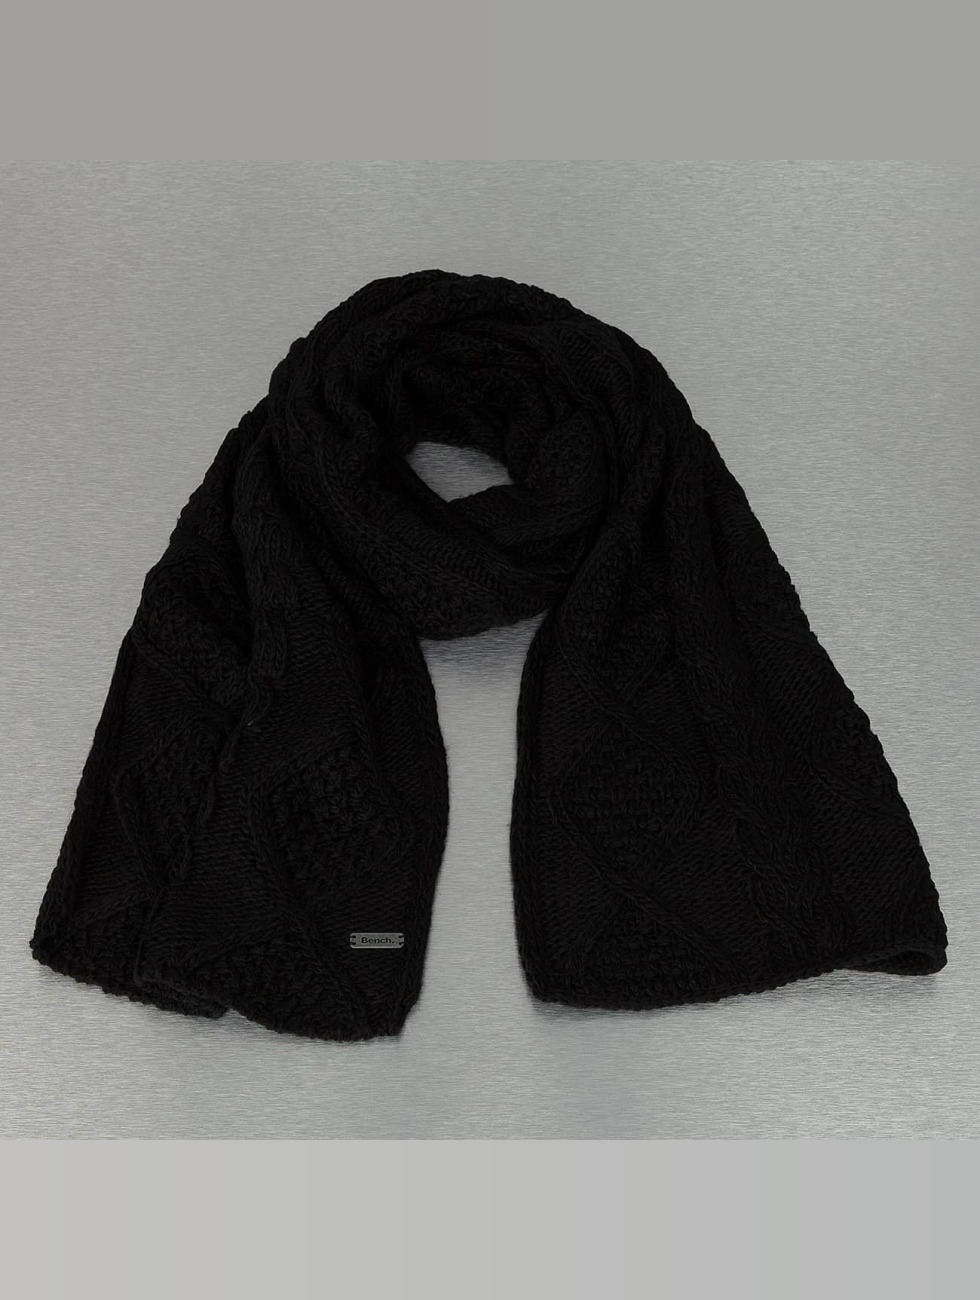 Bench Scarve / Shawl Careen Cable Knit black